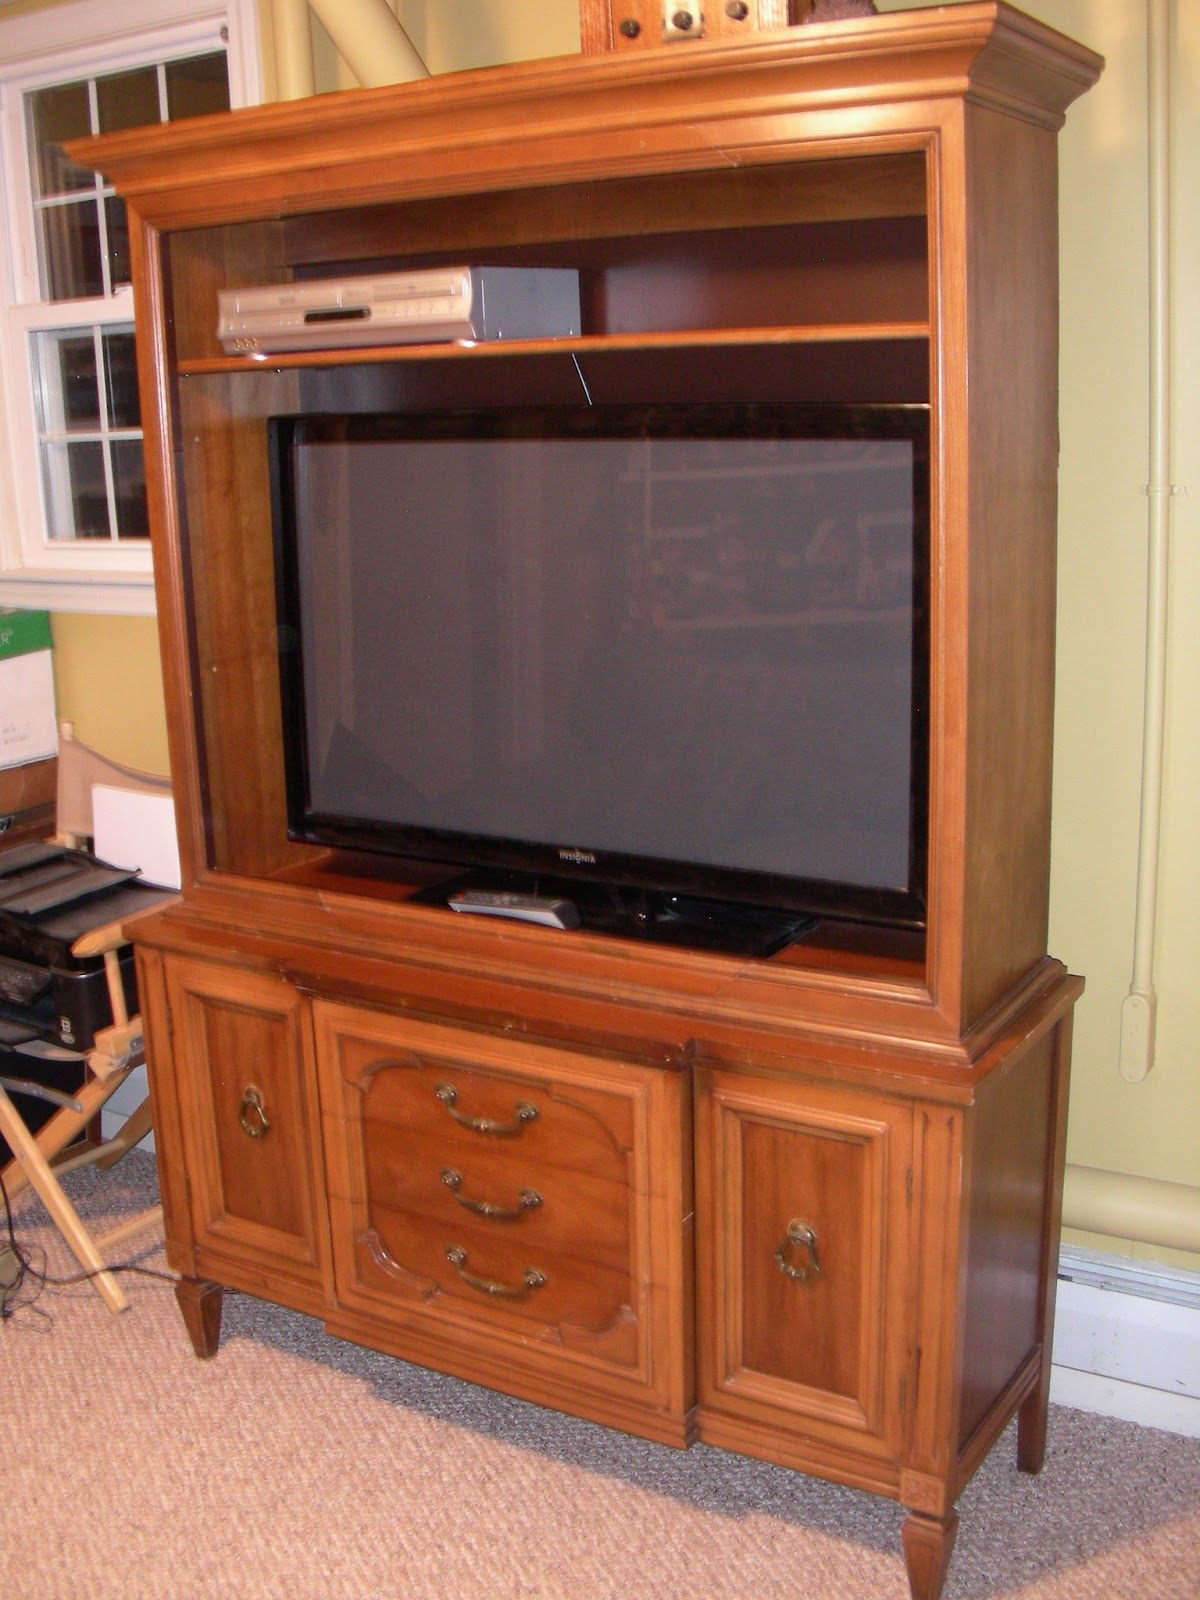 Destinations vintage upcycled repurposed stuff for Upcycled entertainment center